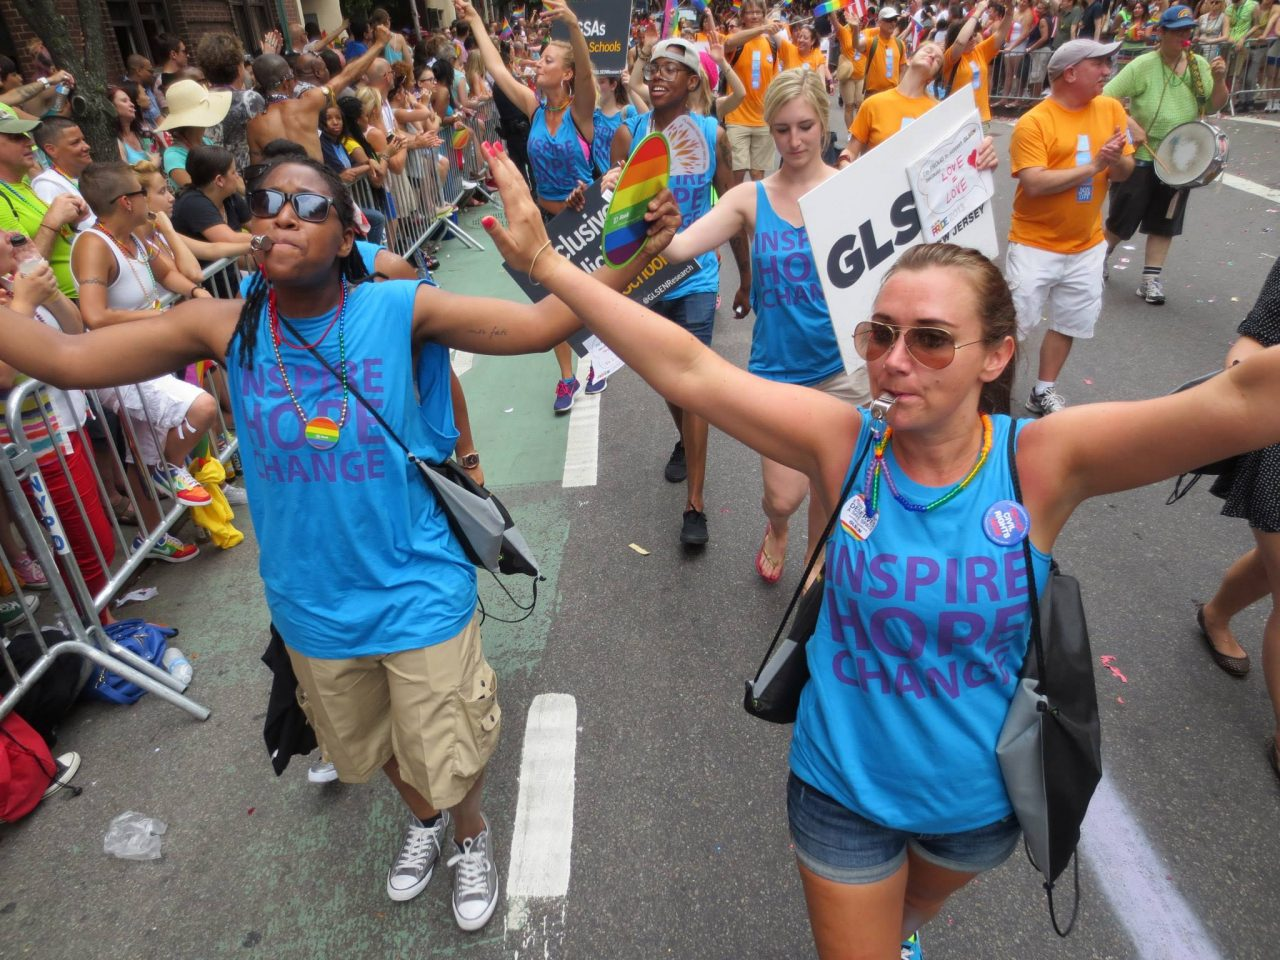 An Open Letter to Straight People During Pride